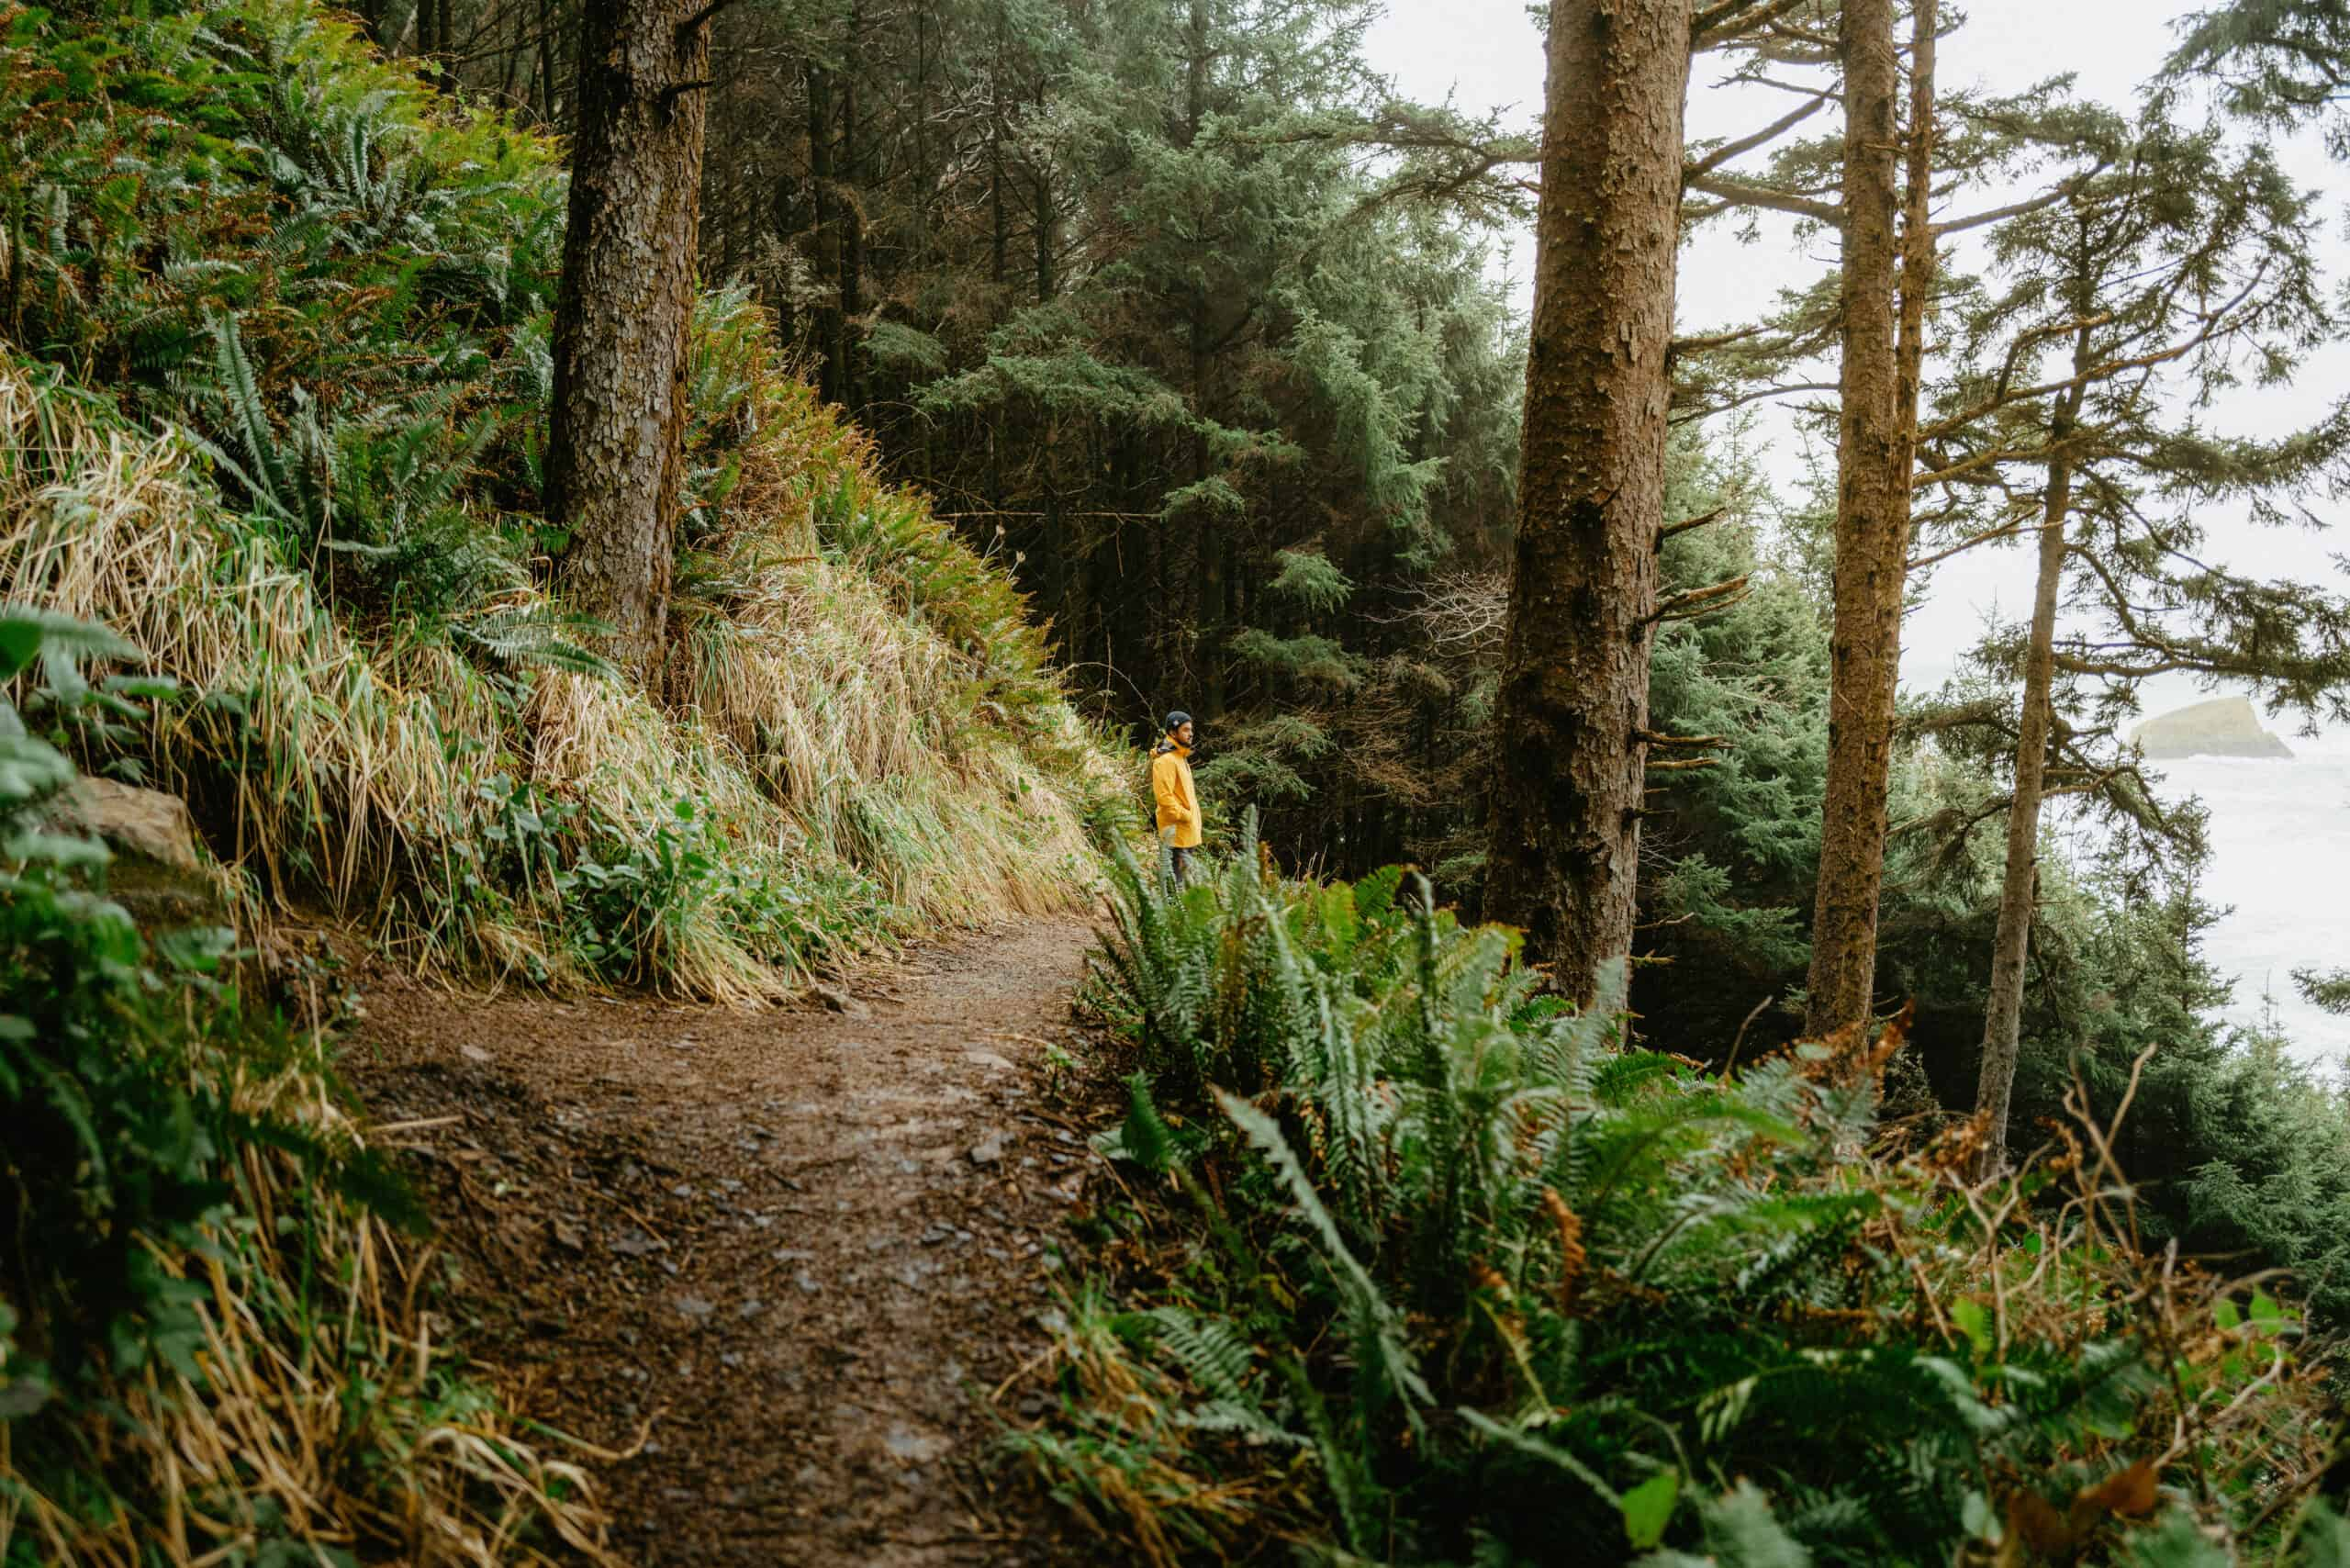 26 Breathtaking Oregon Coast Hikes That Should Be On Your Bucket List